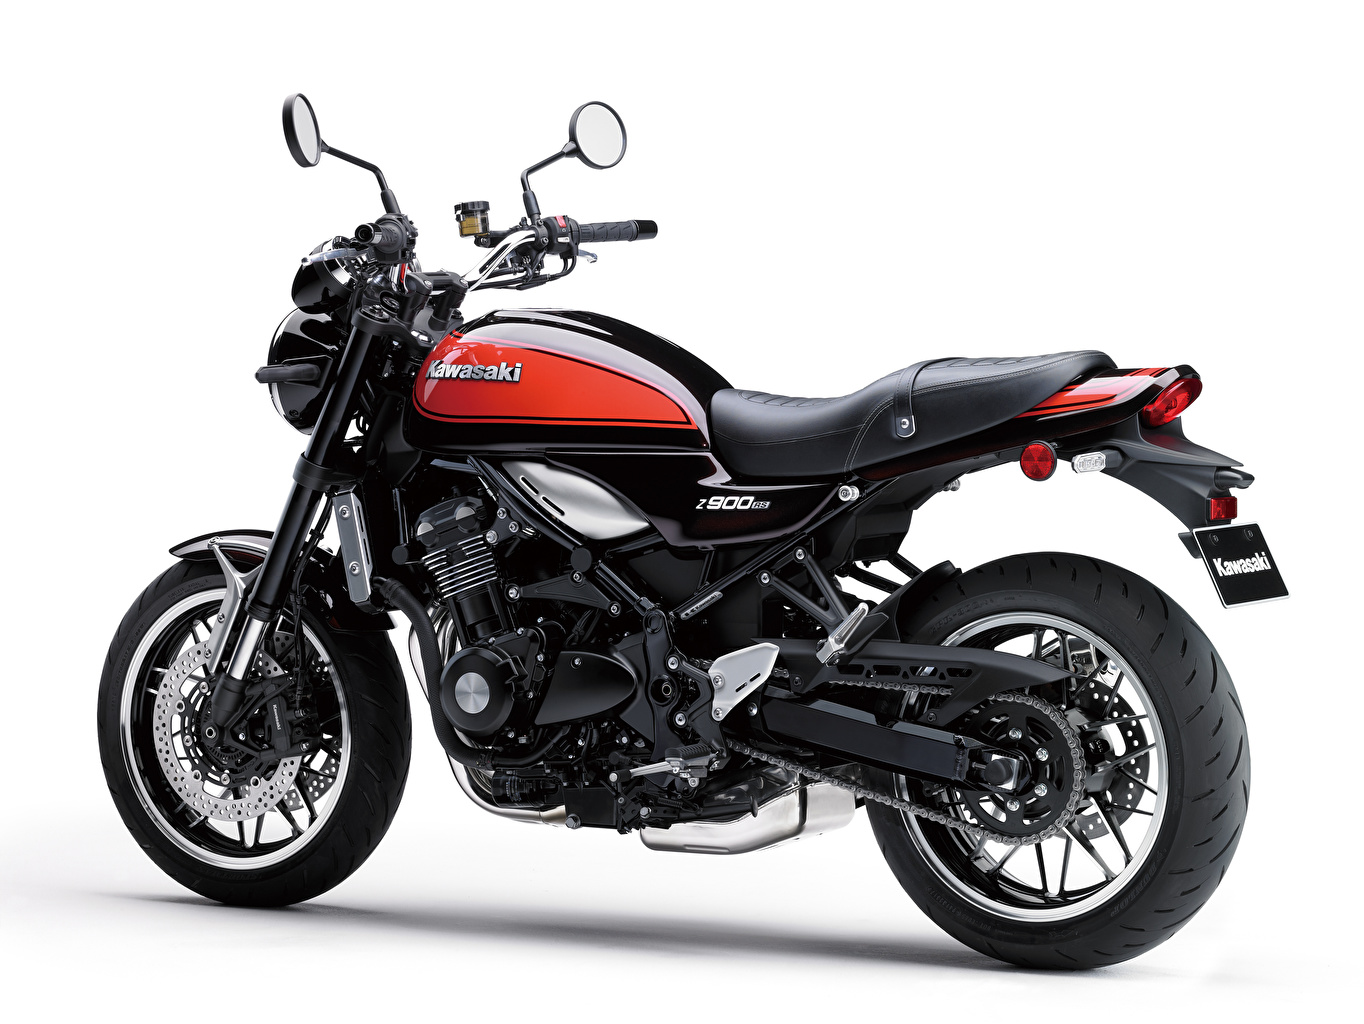 Images Kawasaki Z900RS, 2018 Motorcycles White background motorcycle